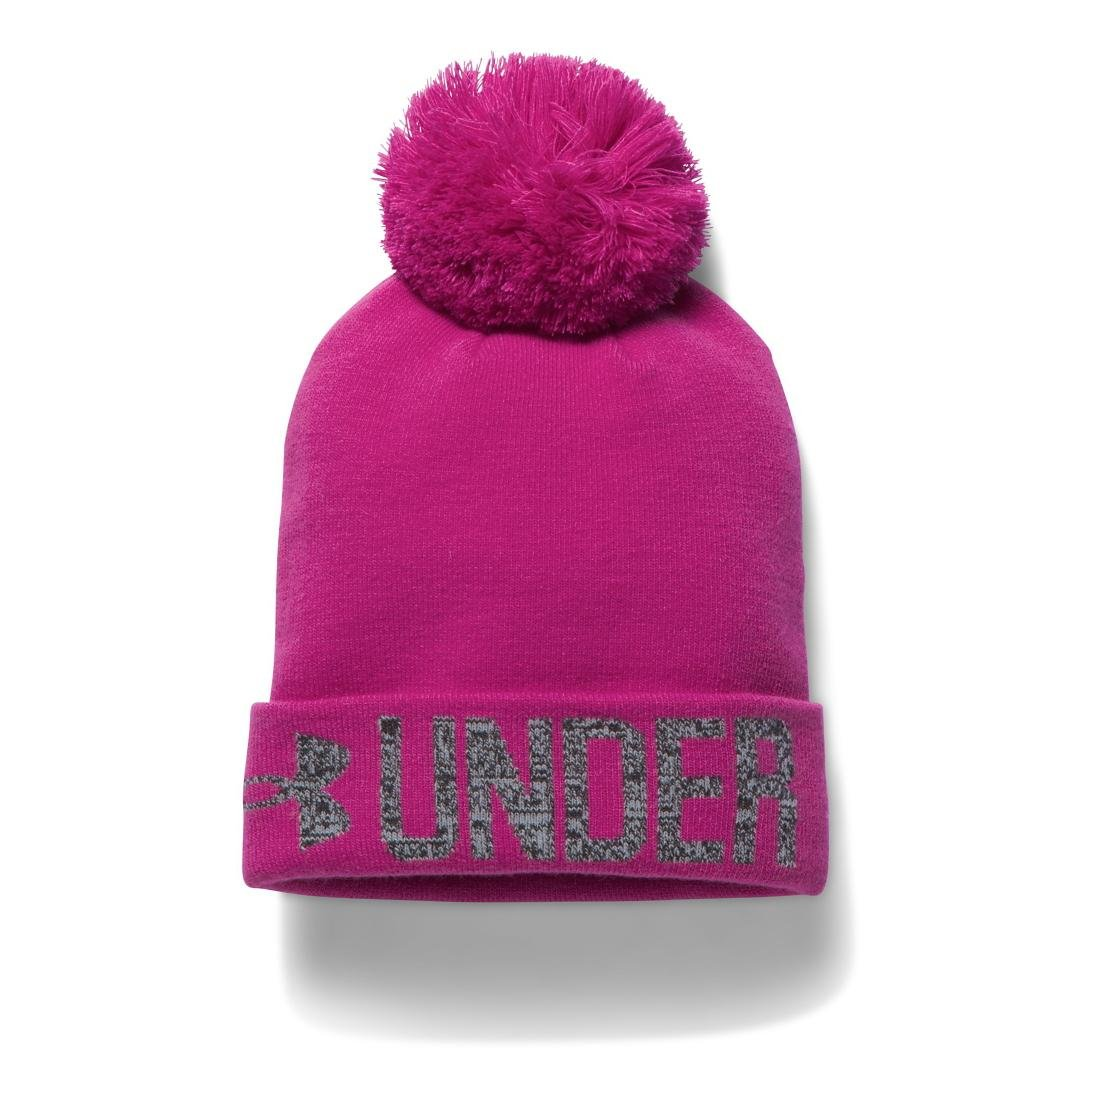 fe18166e4d0 Amazon.com  Under Armour Women s Graphic Pom Beanie Magenta  Shock Black Steel Hat One Size  Sports   Outdoors